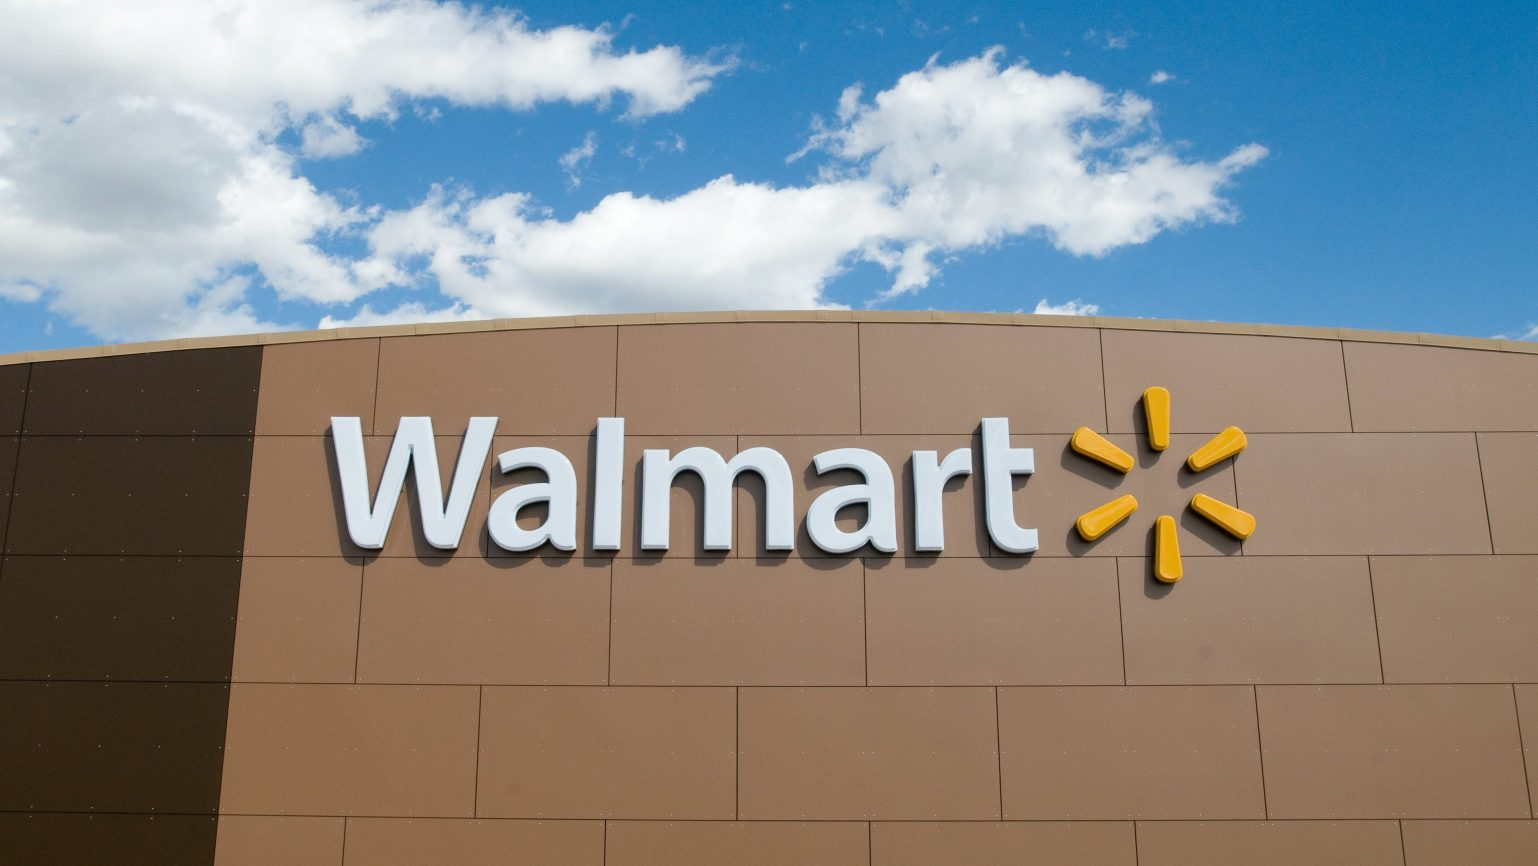 Walmart to challenge Amazon e-book dominance